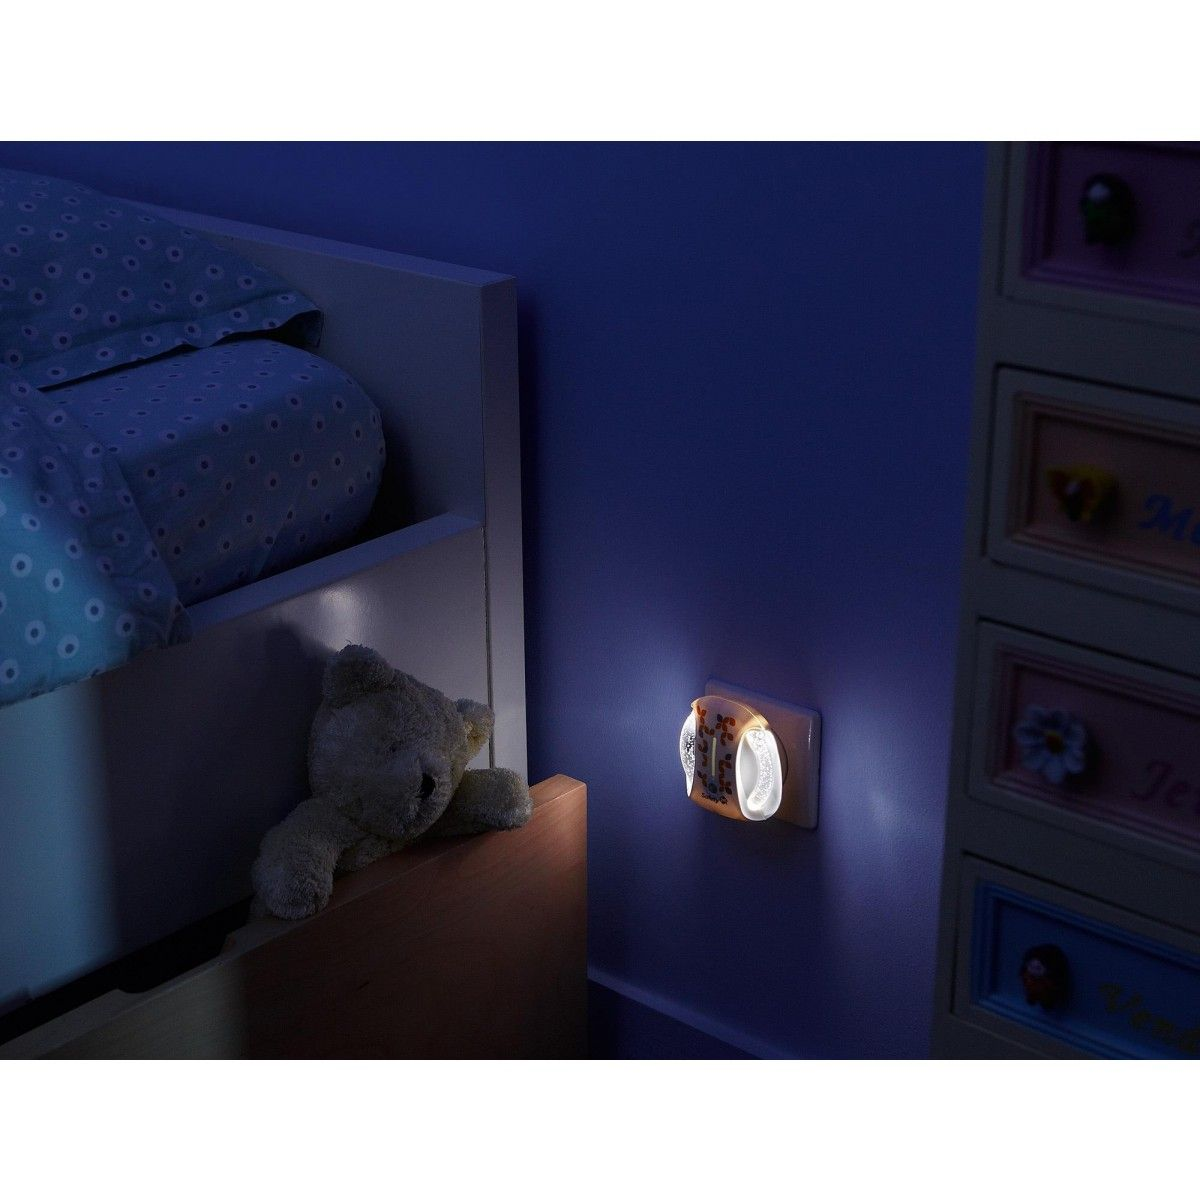 The Safety 1st Automatic Night Light is perfect to keep your child's room slightly lit while they sleep or to dimly light your hallway to help guide anyone to the bathroom when needed. #night #nighttime #toddler #growingup